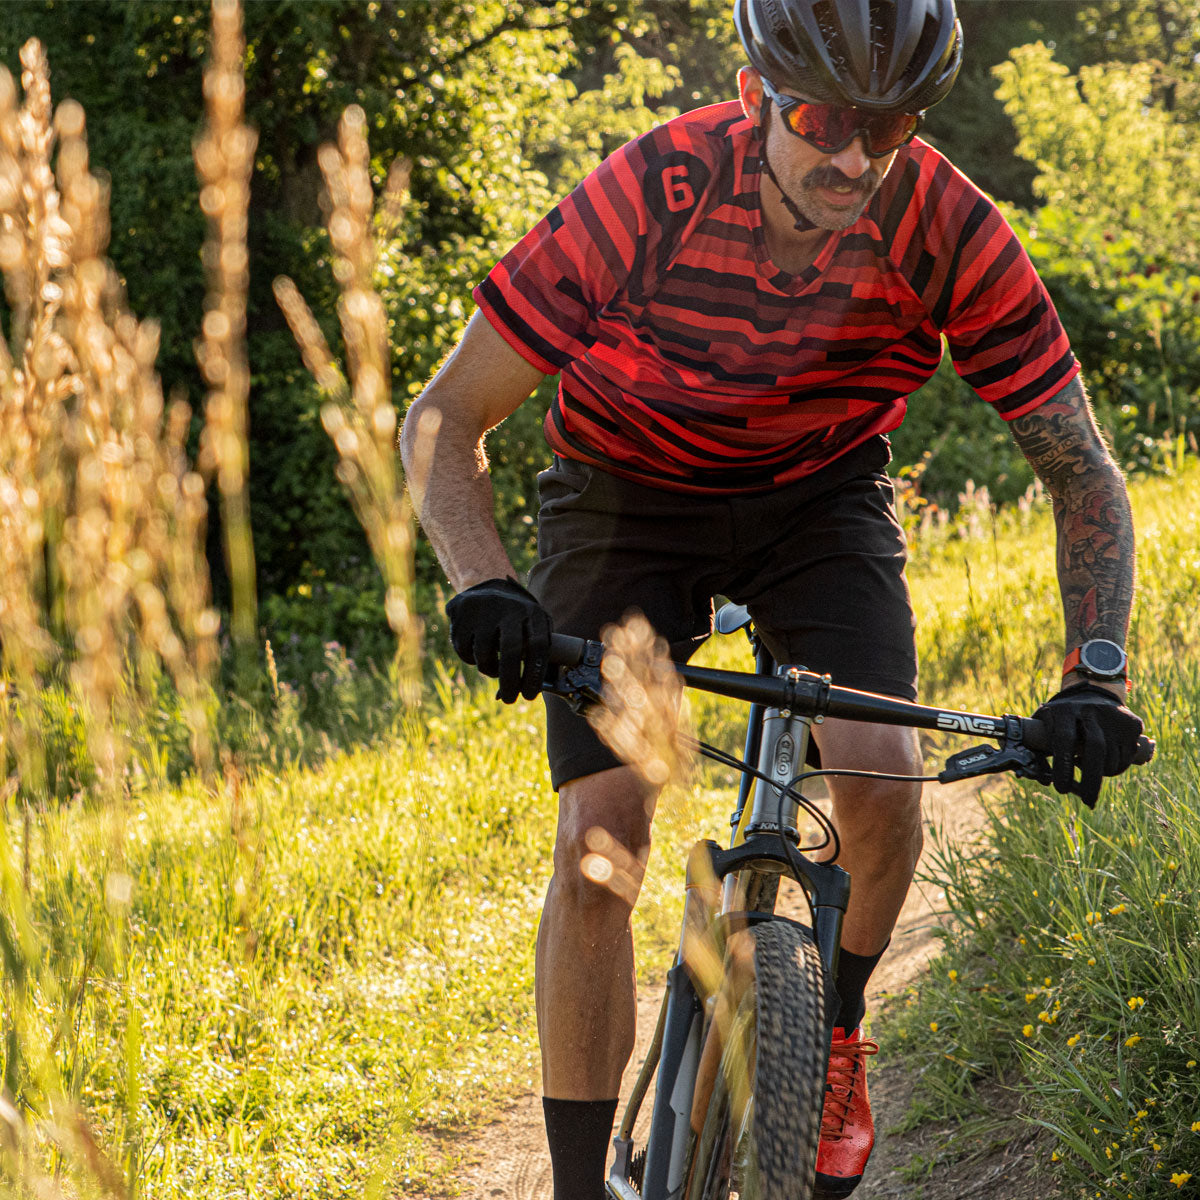 The Blur Trail Jersey